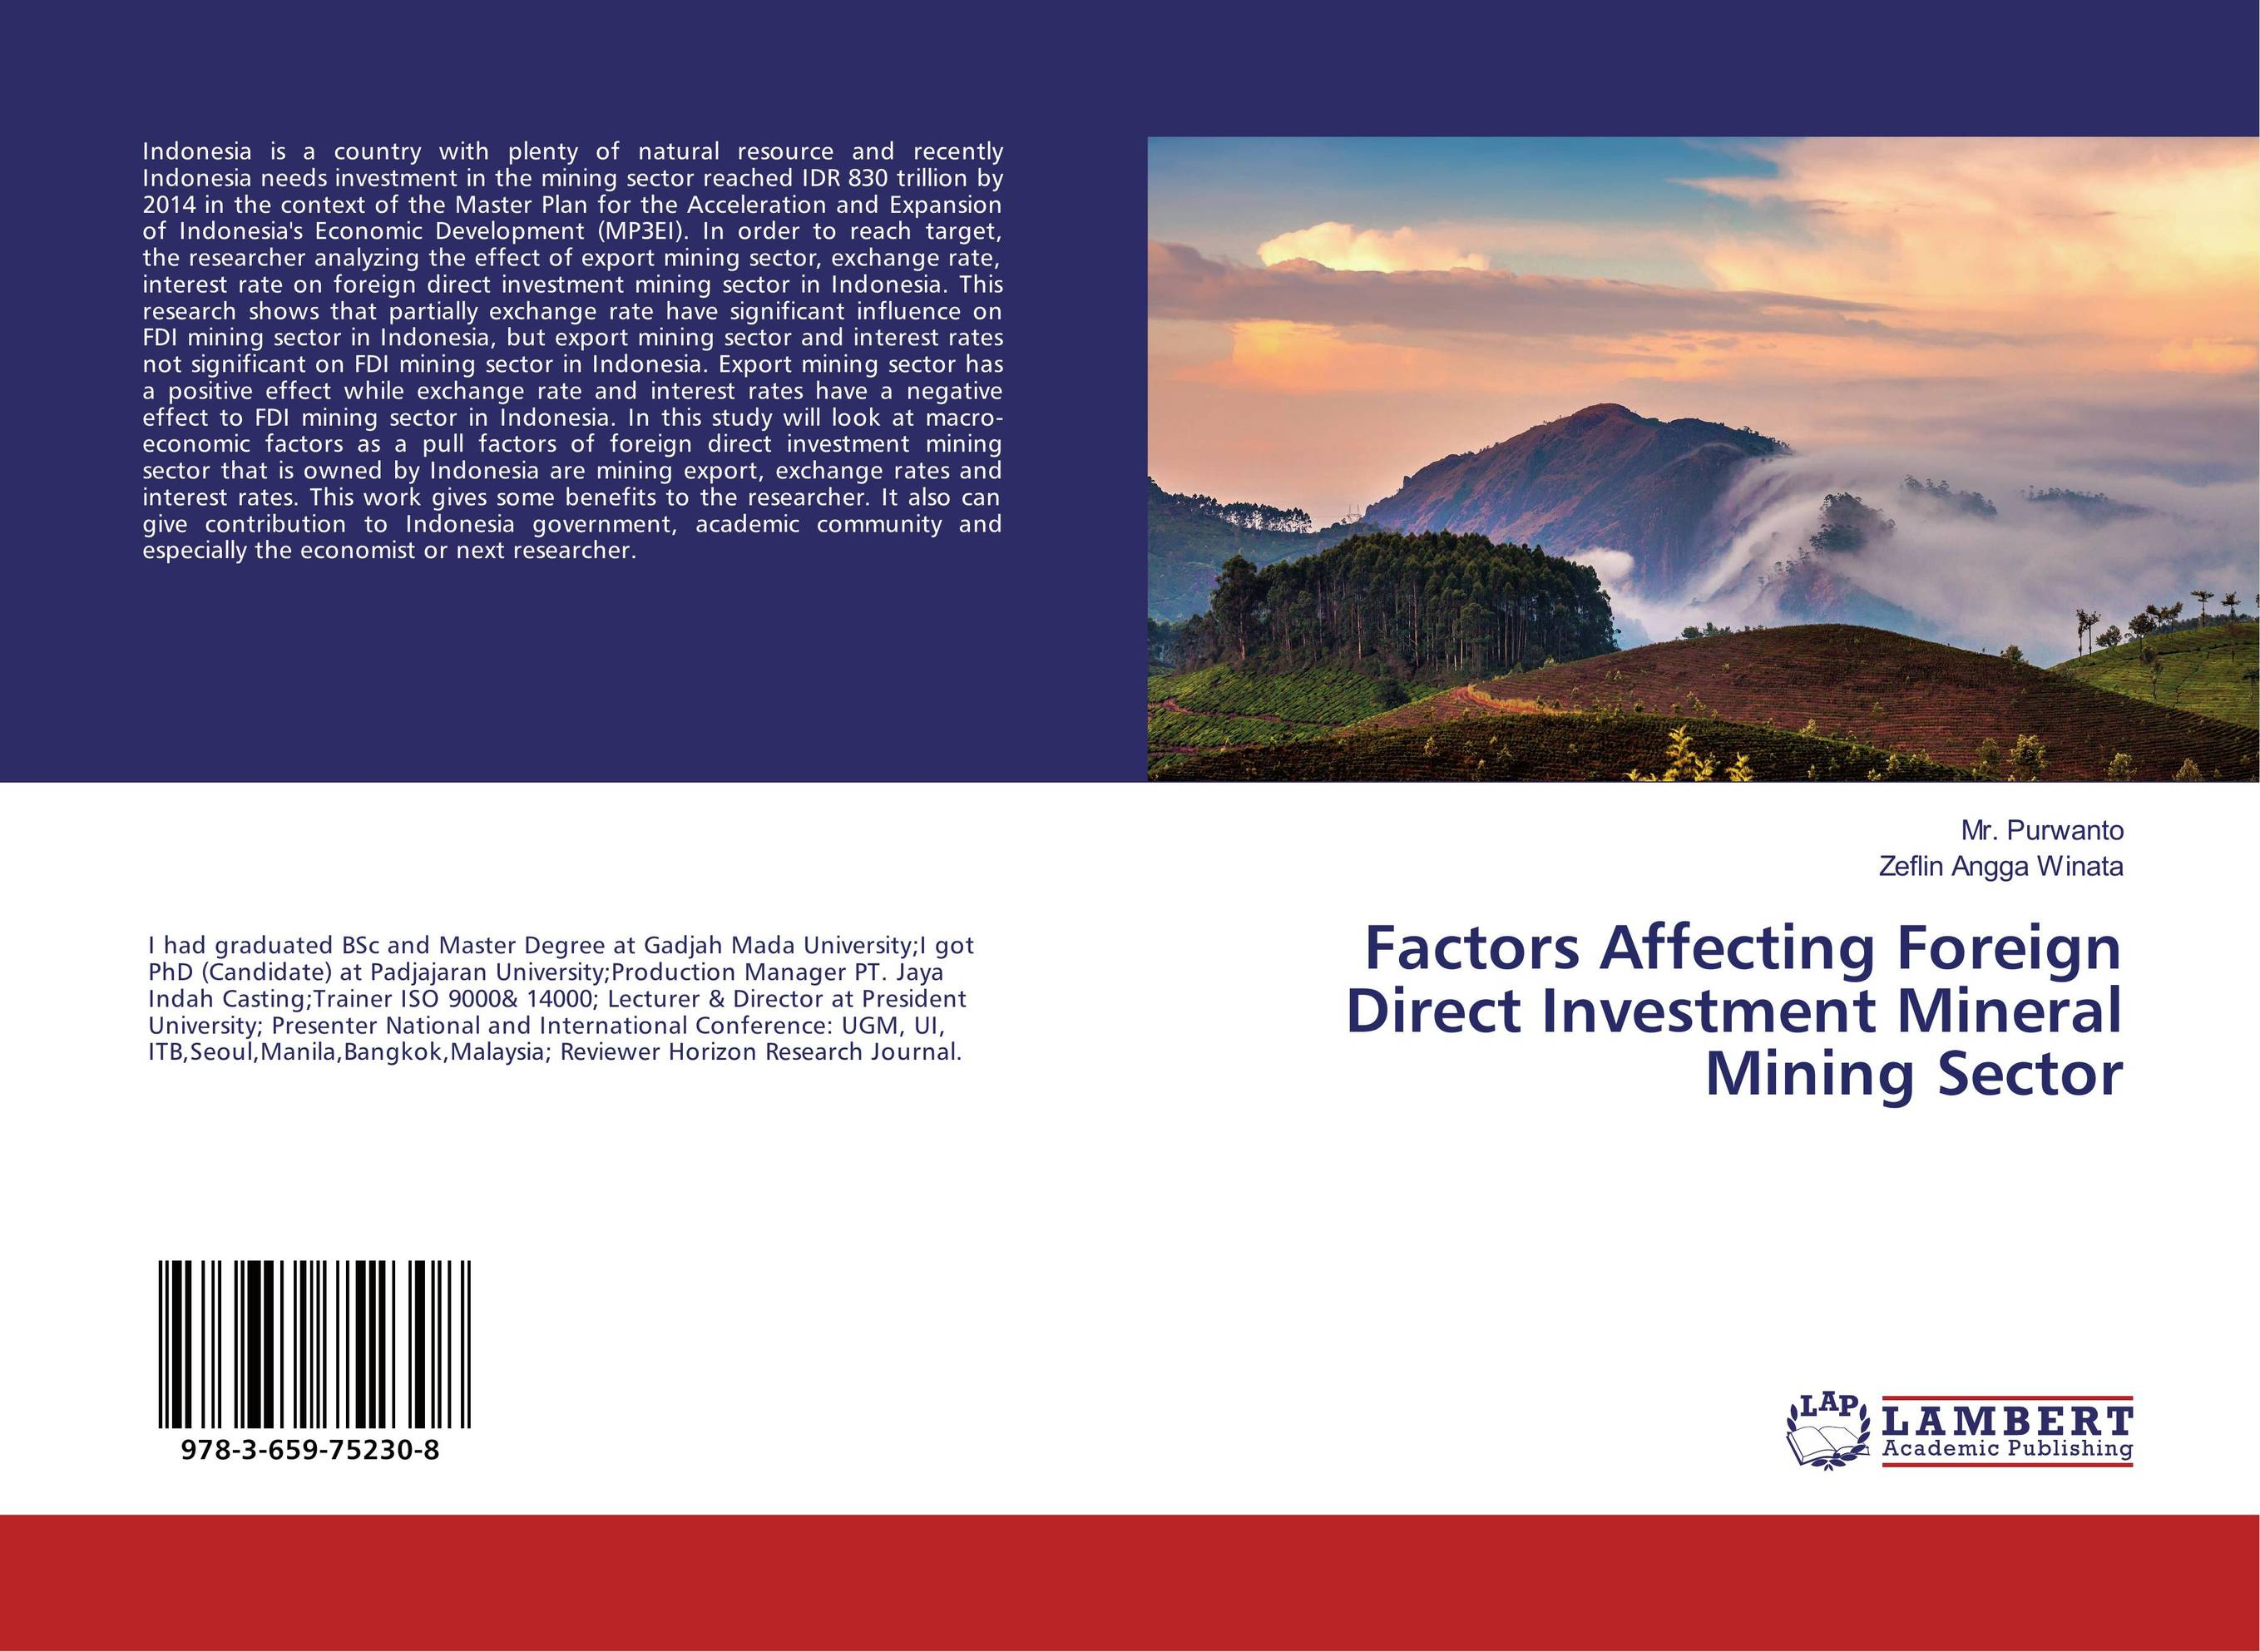 Factors Affecting Foreign Direct Investment Mineral Mining Sector tobias olweny and kenedy omondi the effect of macro economic factors on stock return volatility at nse